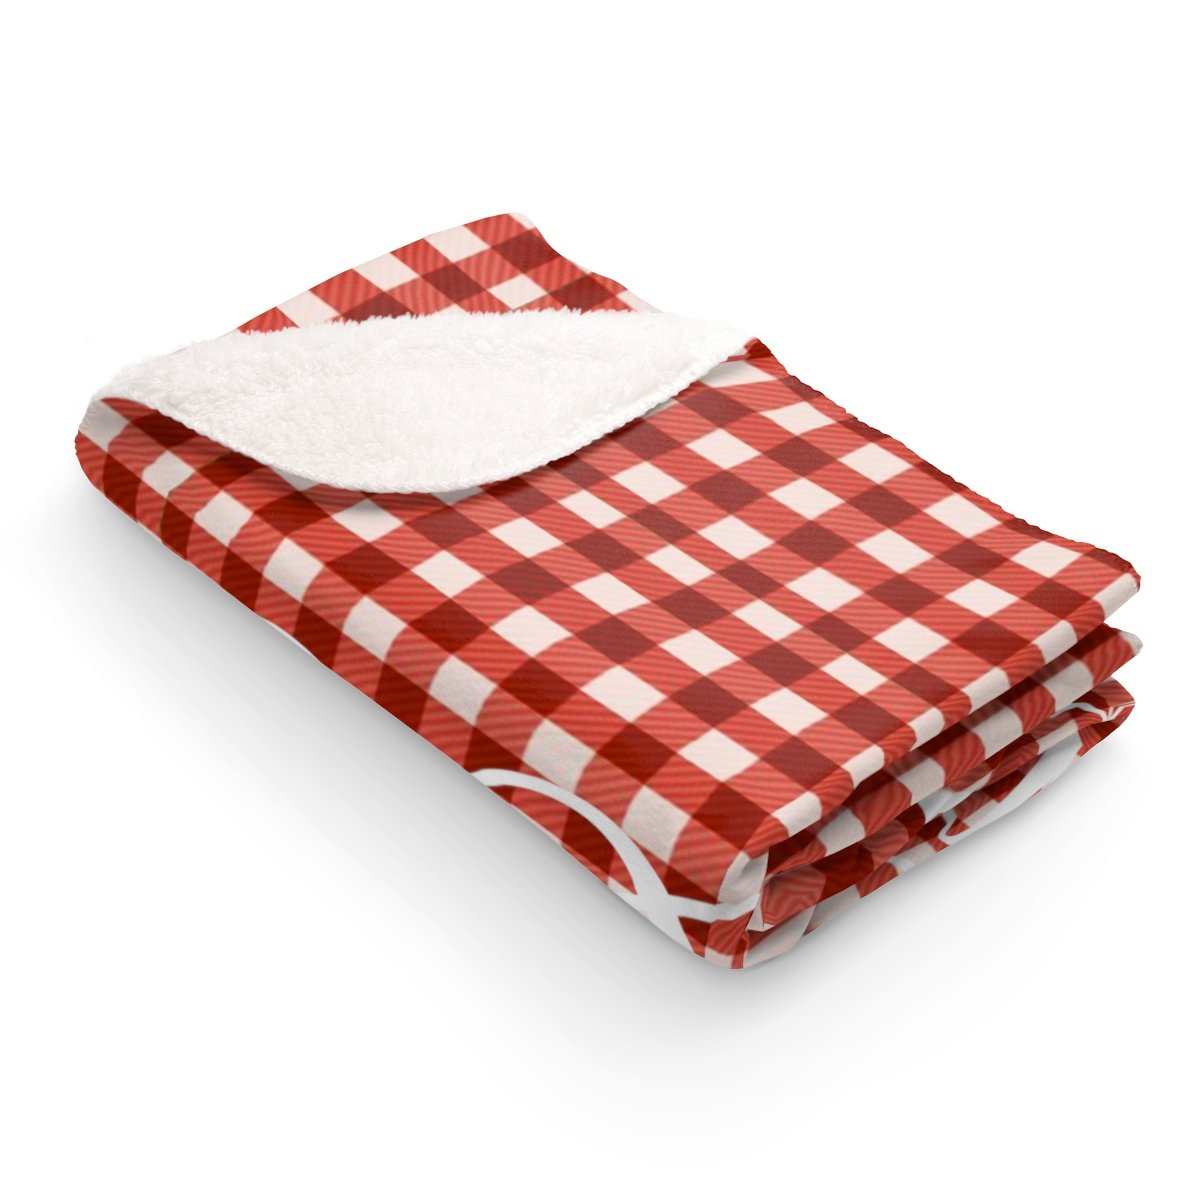 Seasonal & Holiday Christmas Sherpa Fleece Blanket for kids-Home - Throws & Blankets-Maison d'Elite-50x60-Très Elite